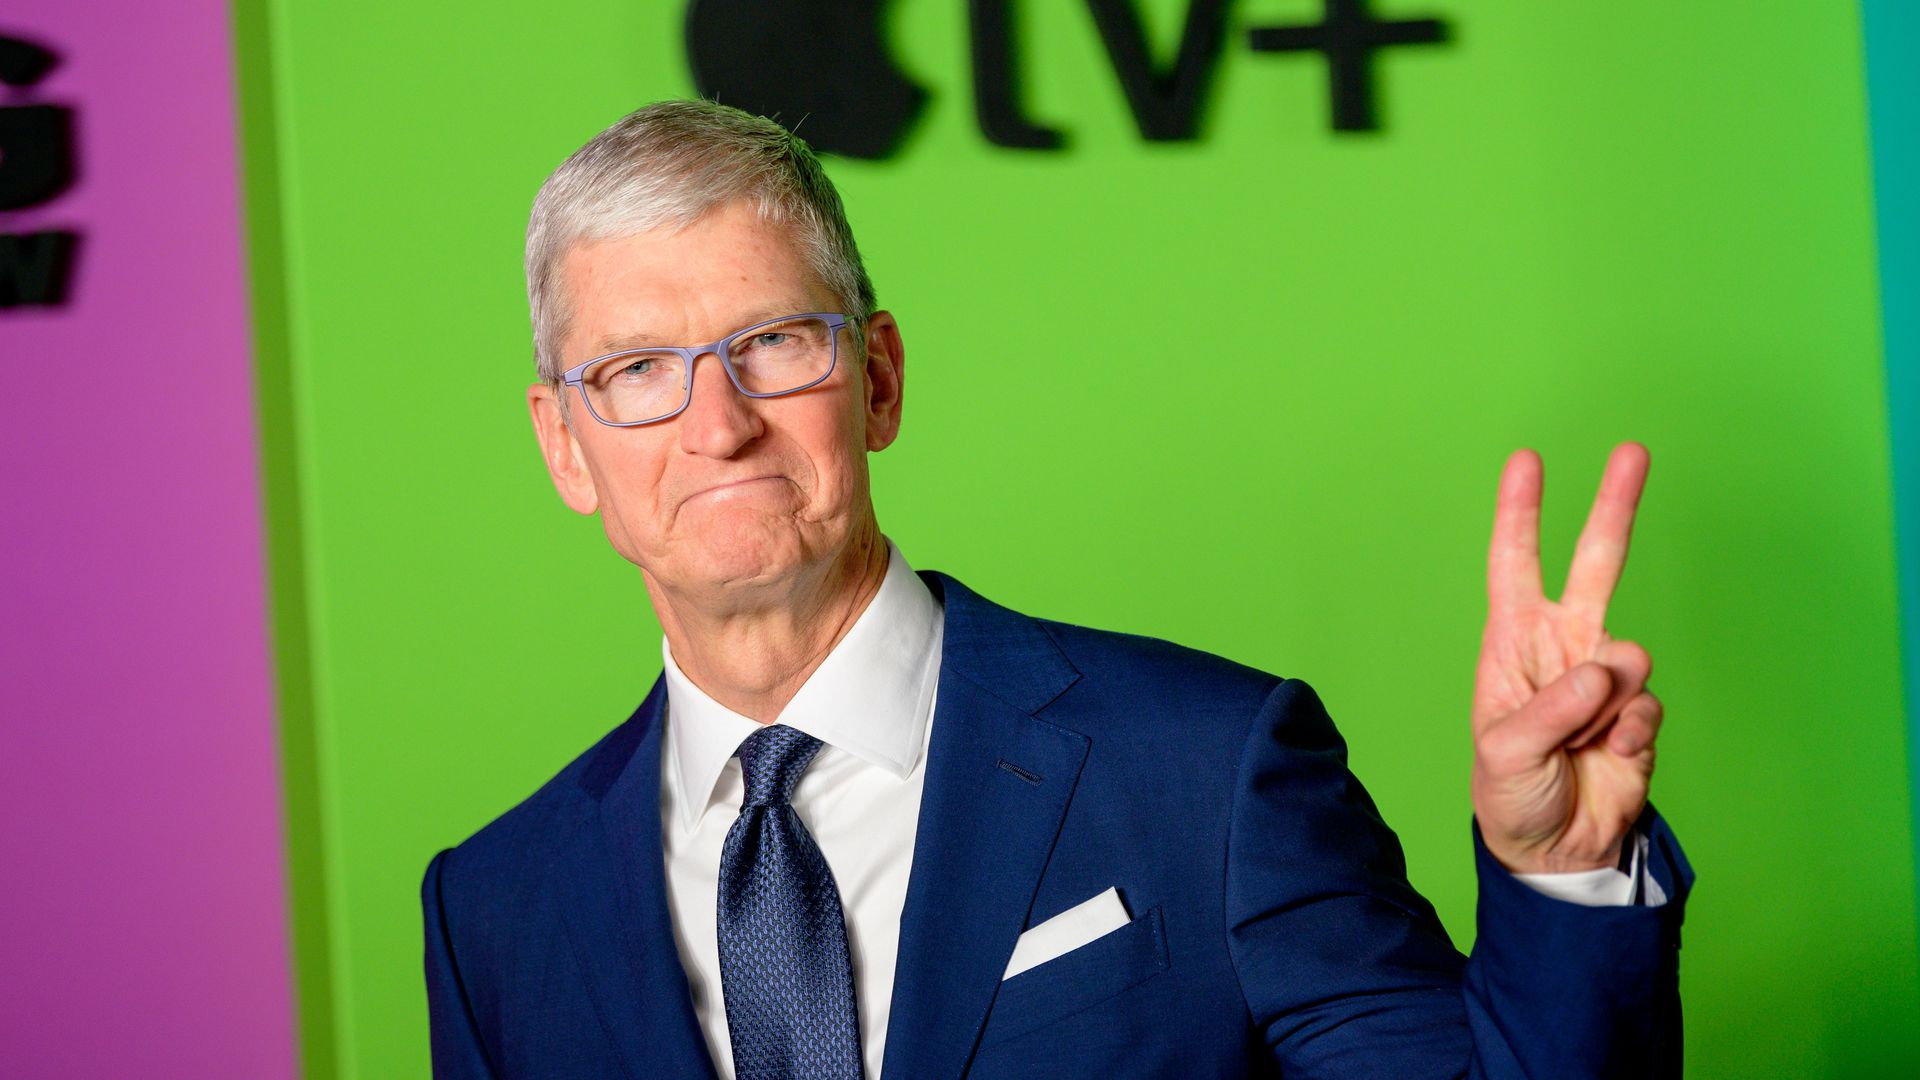 Tim Cook raising a few fingers, with an Apple logo in the background.